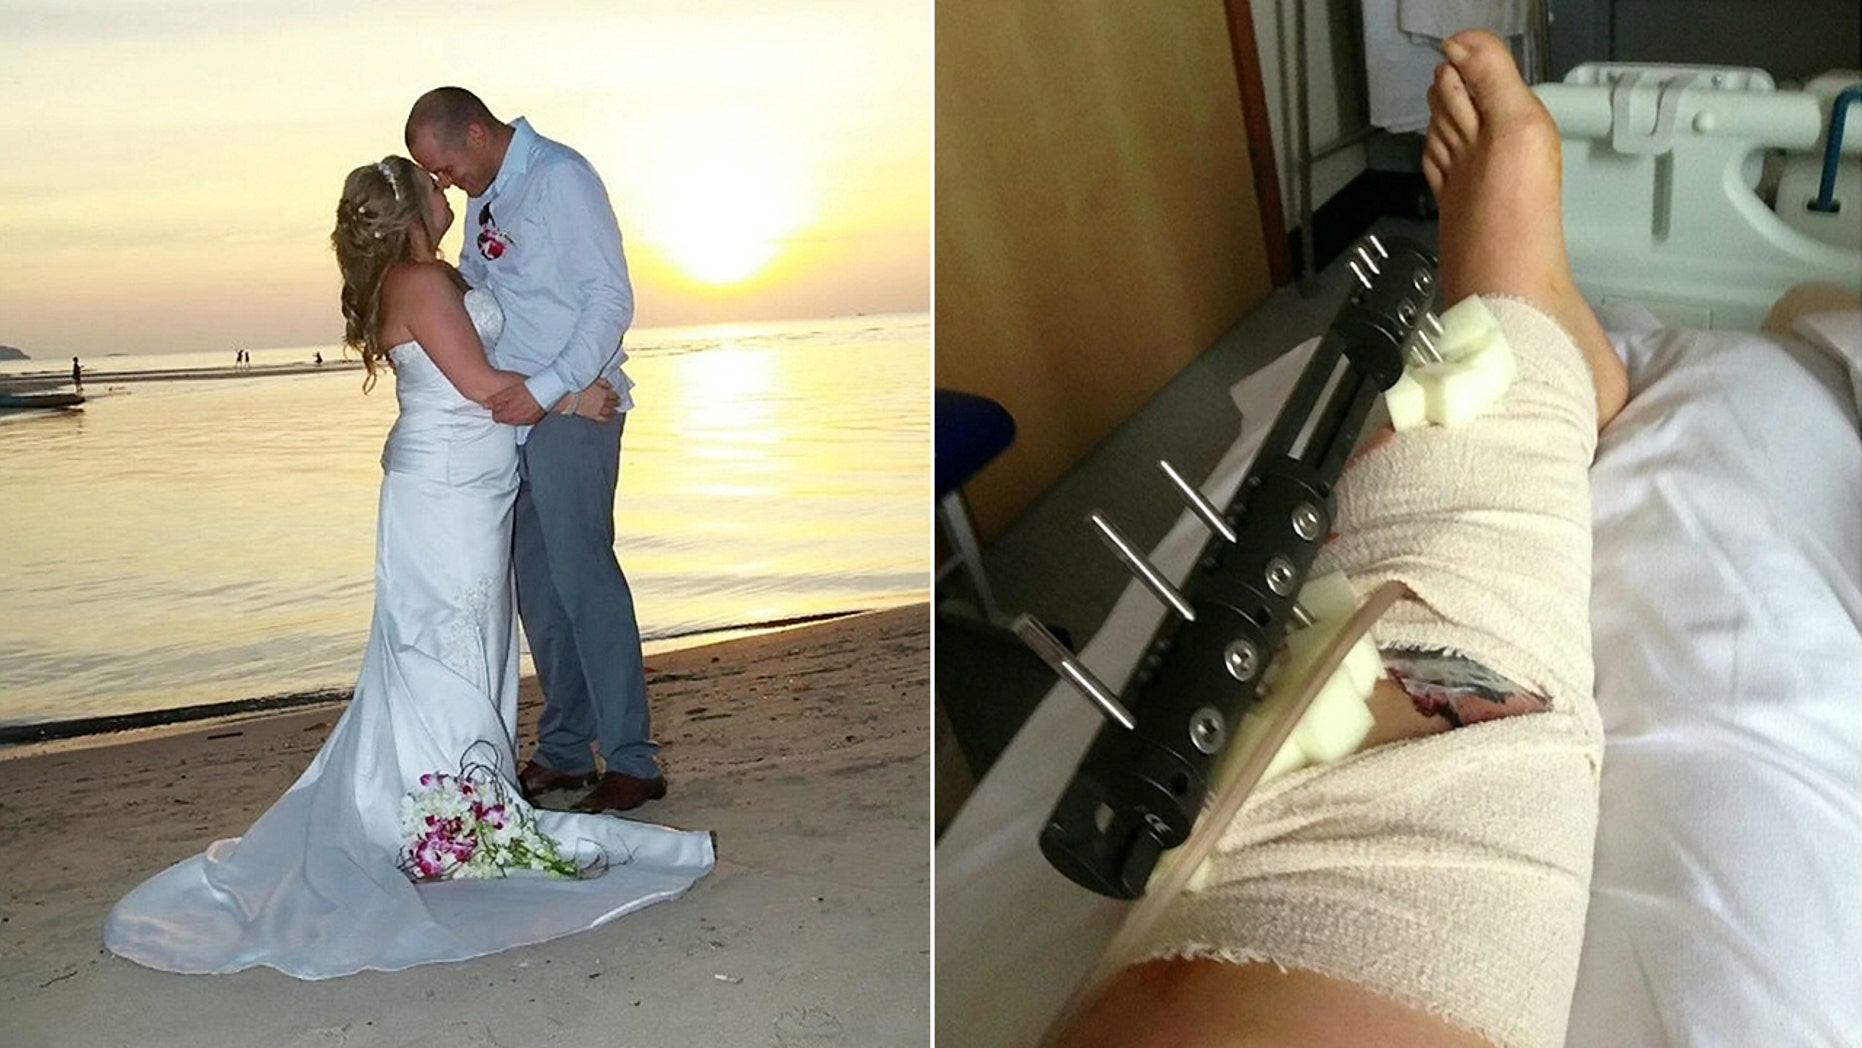 Natalie Fitzpatrick, who had wed husband Paul in a 2012 beach ceremony in Koh Chang, Thailand, said the pair were watching a fireworks display with her 4-year-old daughter when one shot went off into the crowd.